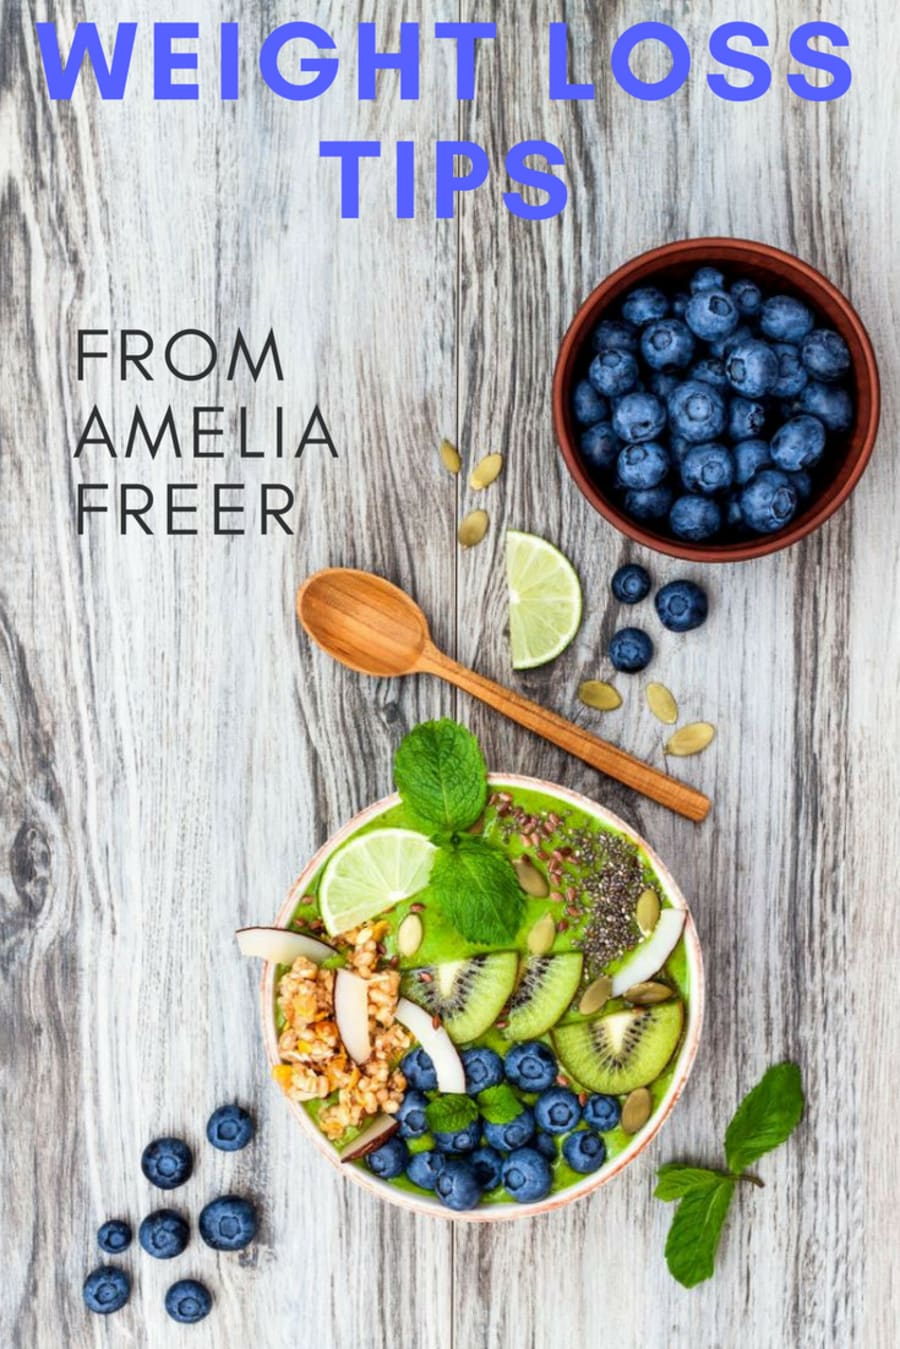 Sam Smith's Nutritionist Amelia Freer On Weight Loss And